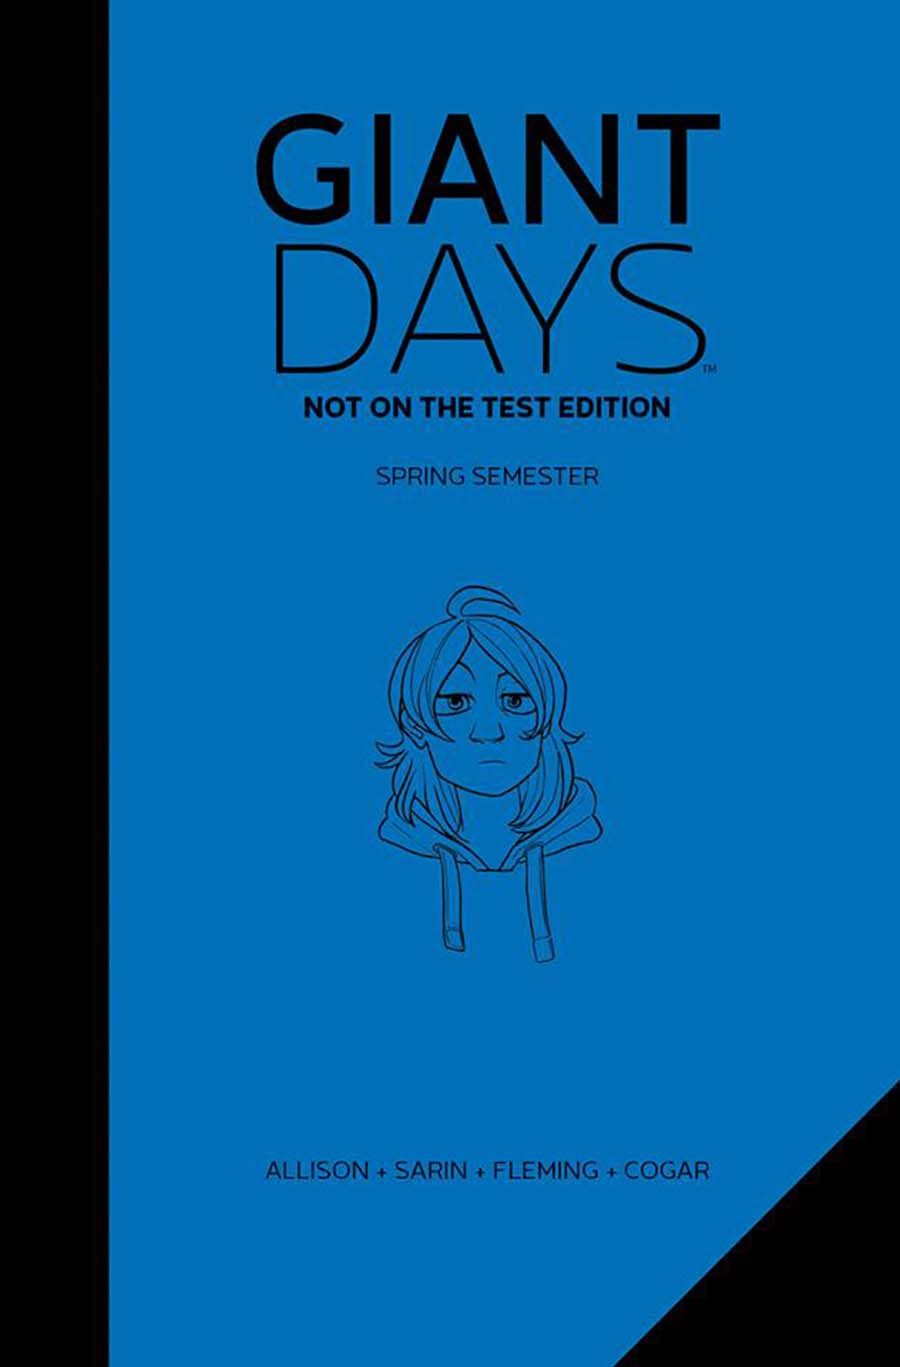 Giant Days Not On The Test Edition Vol 2 Winter Semester HC